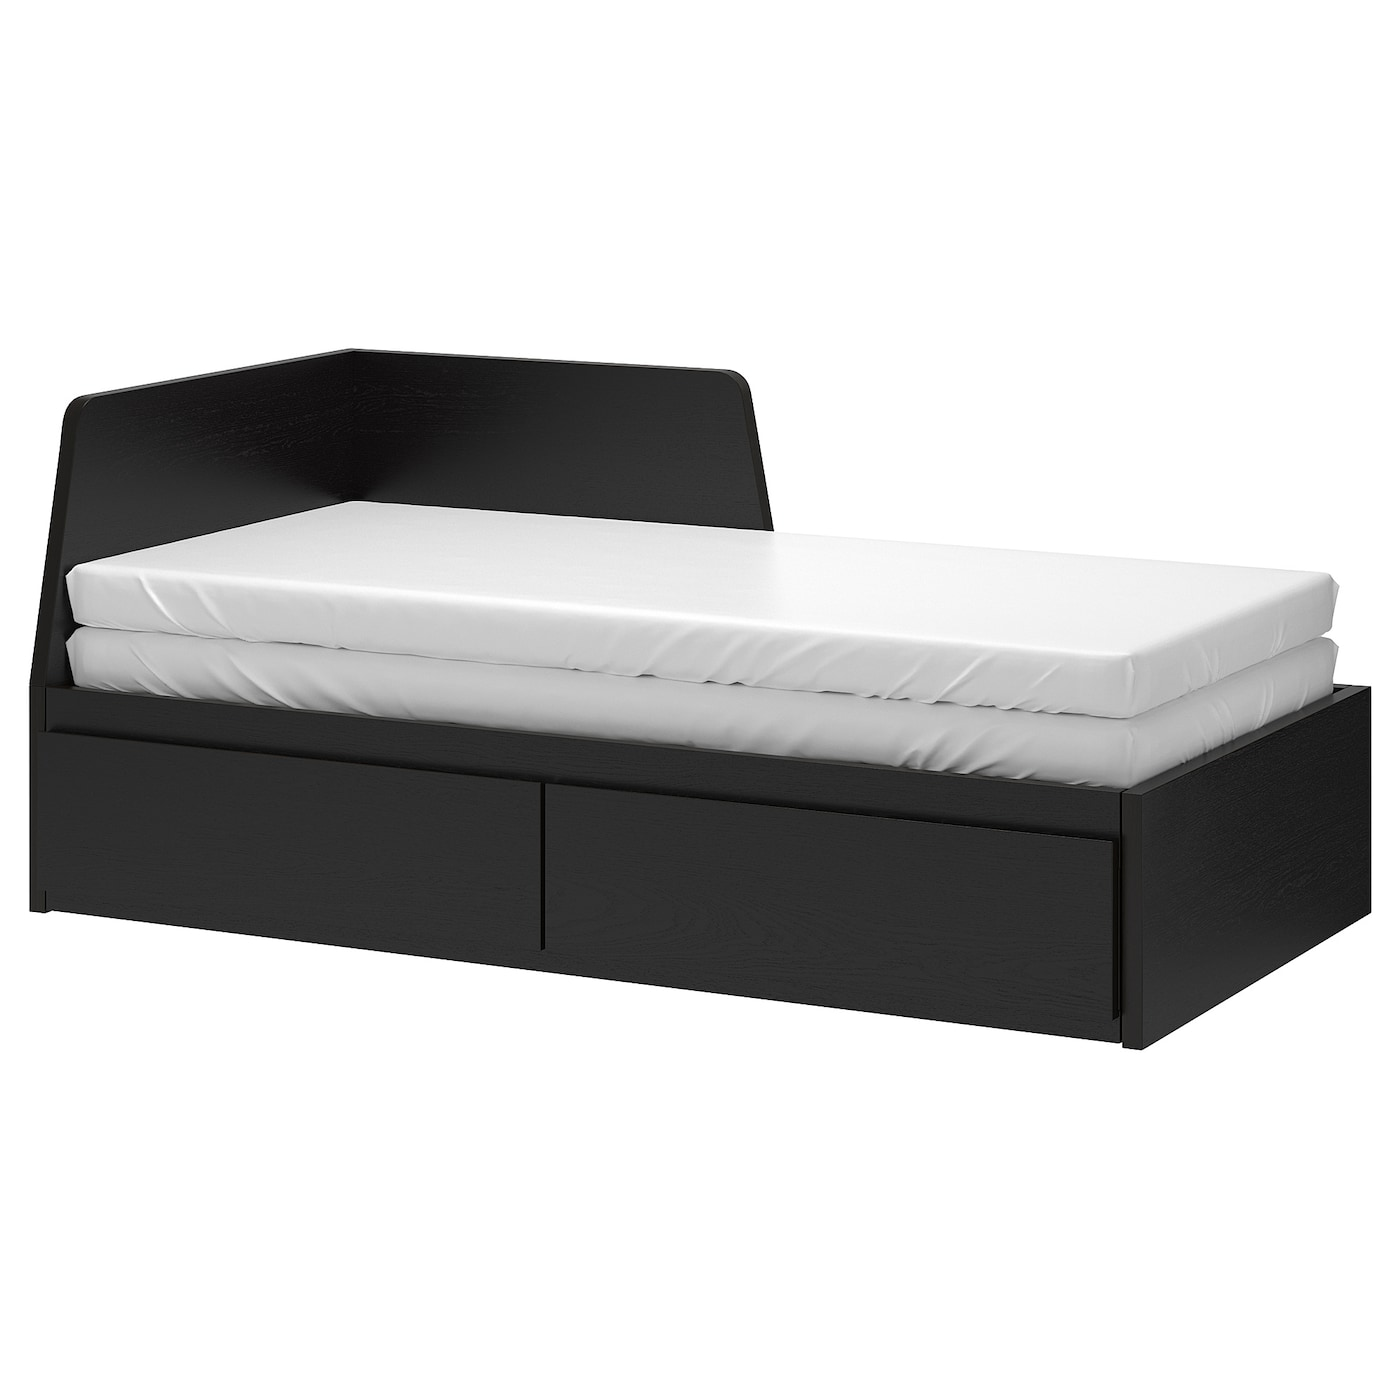 Flekke Day Bed Frame With 2 Drawers Black Brown 80x200 Cm Ikea